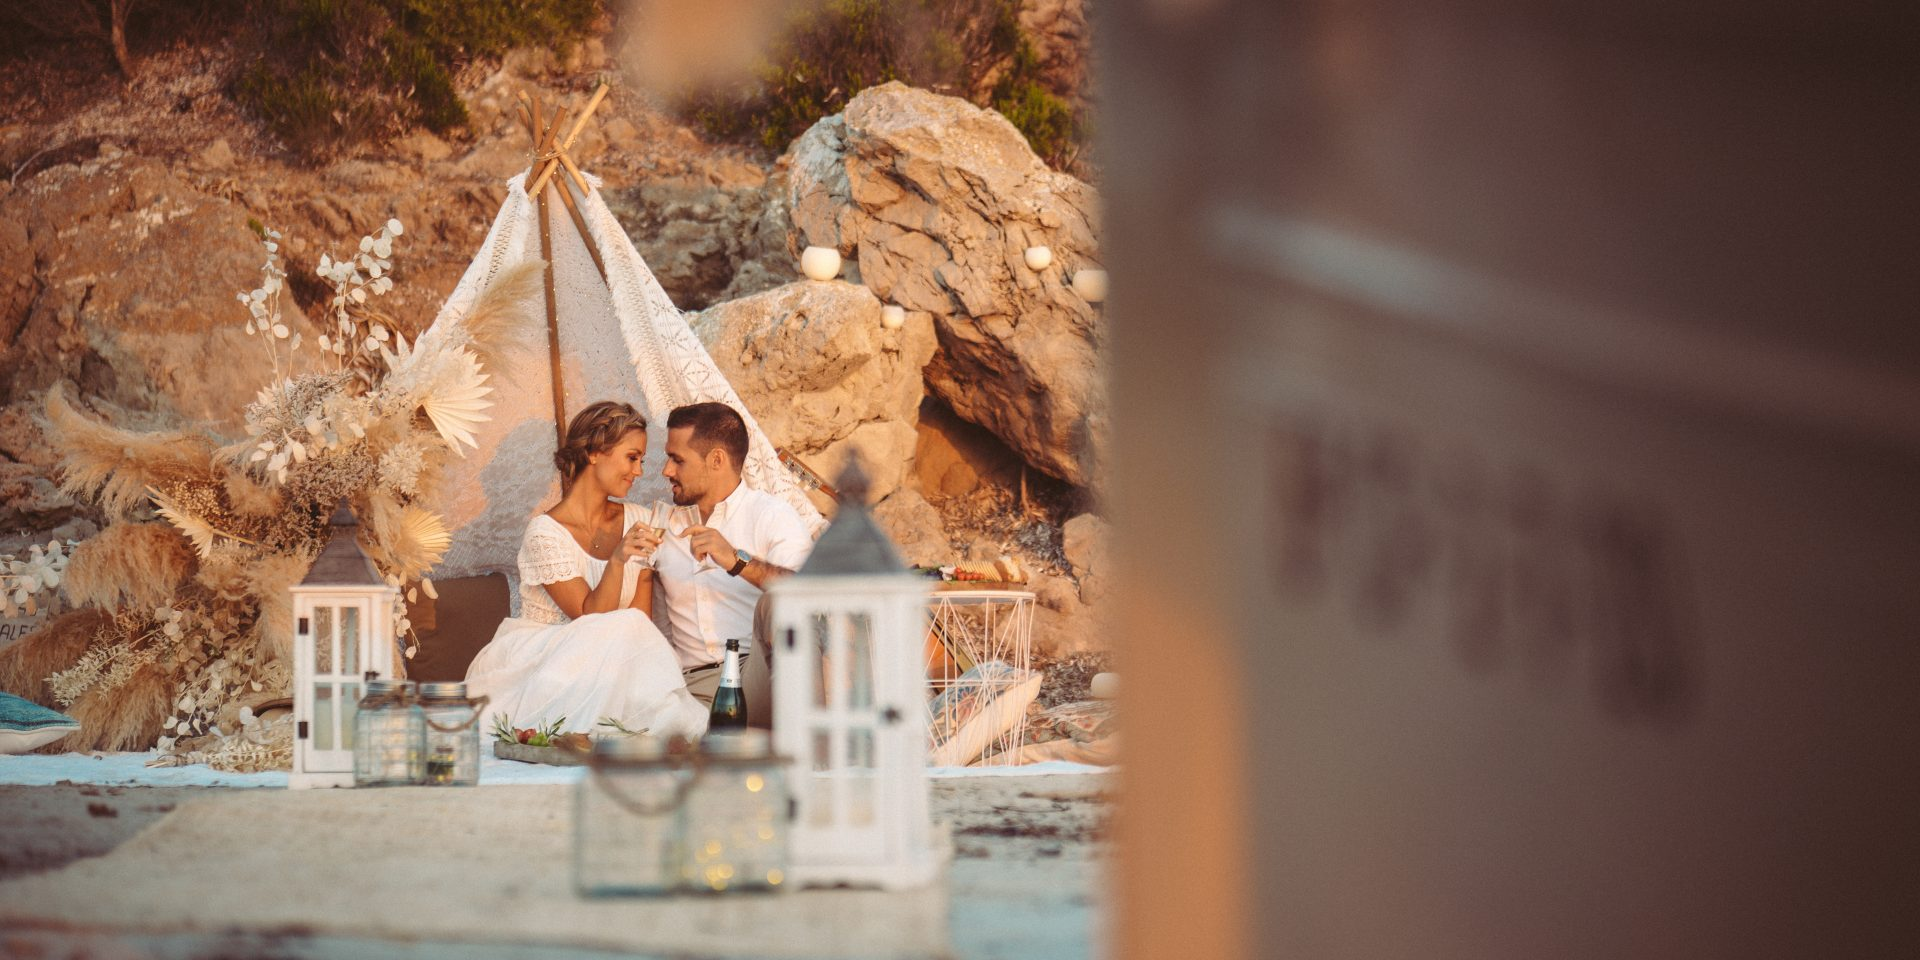 Wedding and event photographer and videographer in Menorca and Mallorca